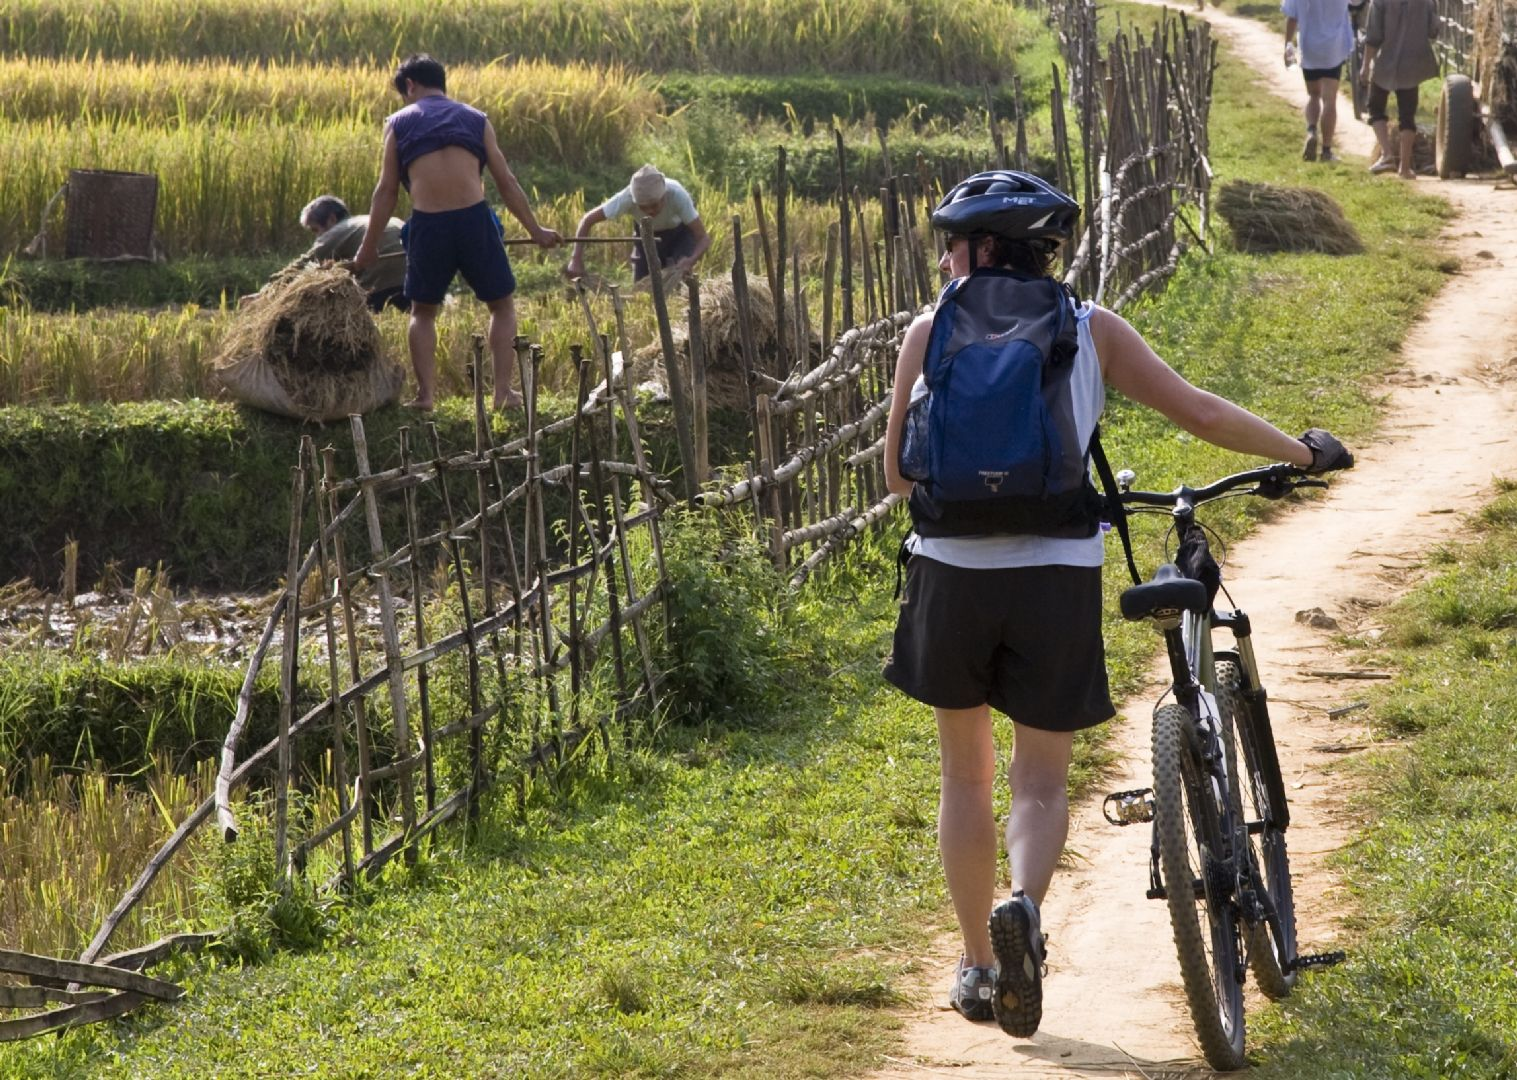 Nam '09-4.jpg - Laos - Hidden Treasures - Cycling Adventures